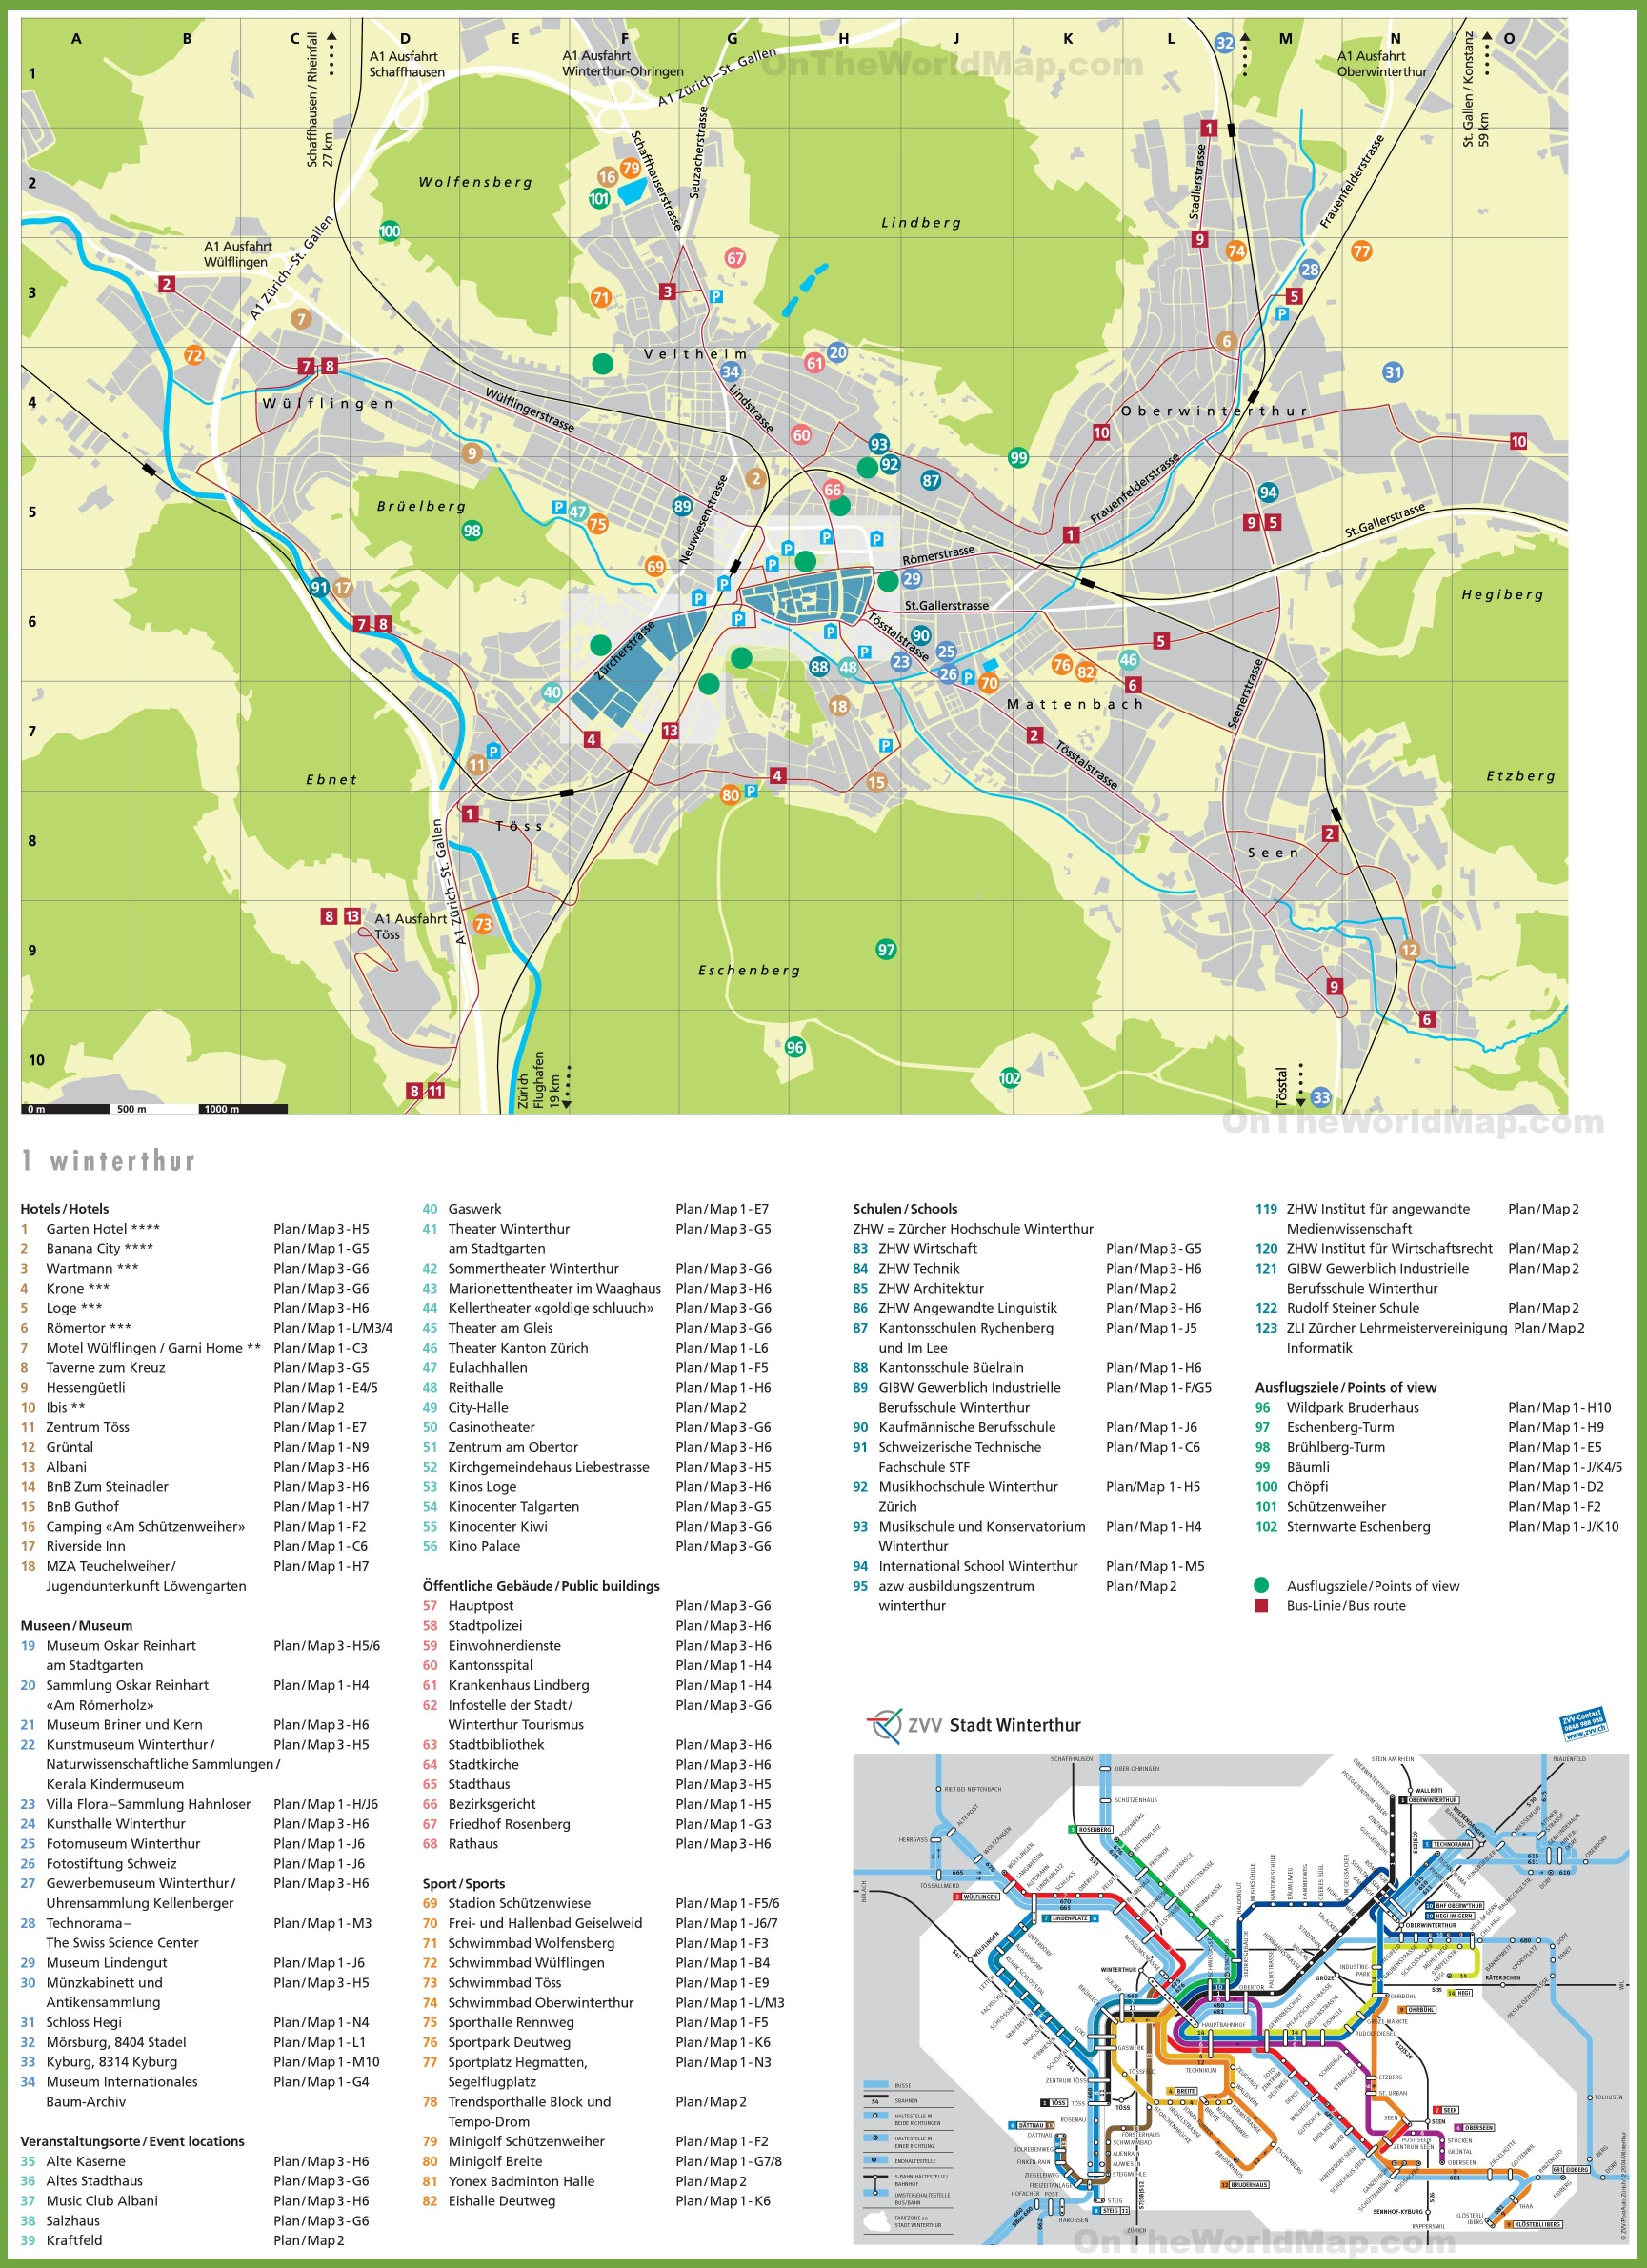 Winterthur tourist map